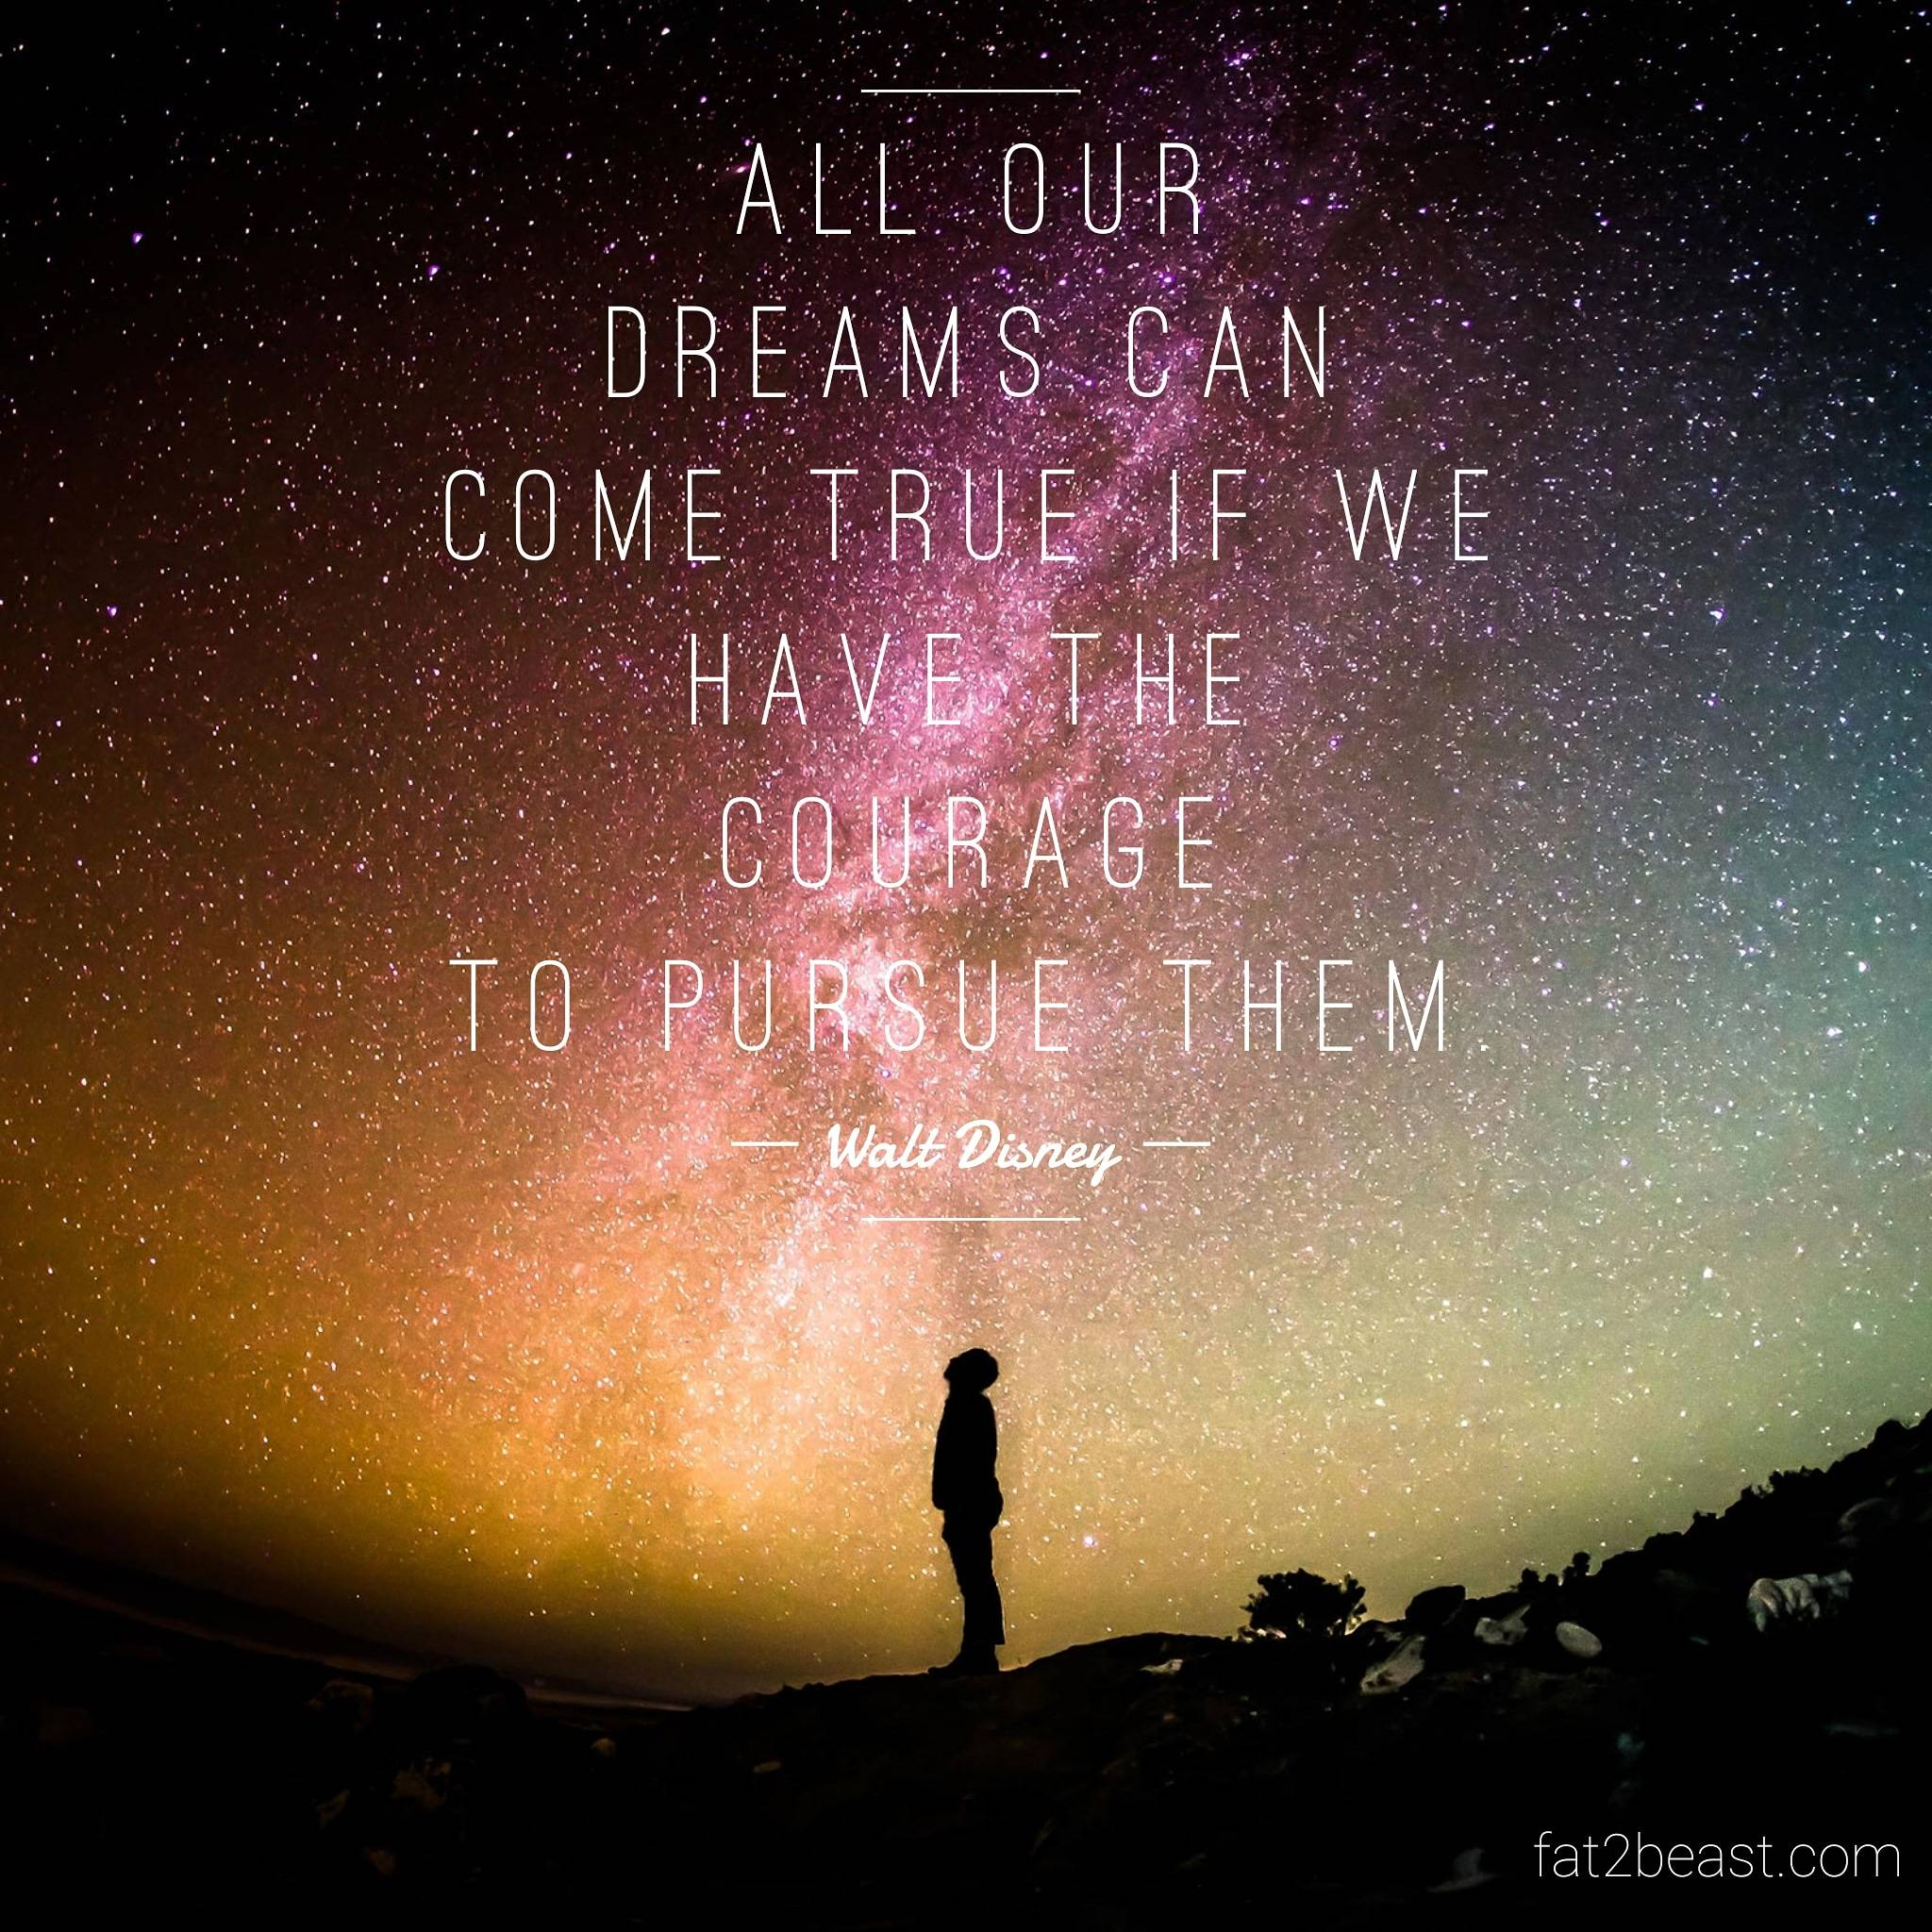 [IMAGE] All our dreams can come true if we have the courage to pursue them